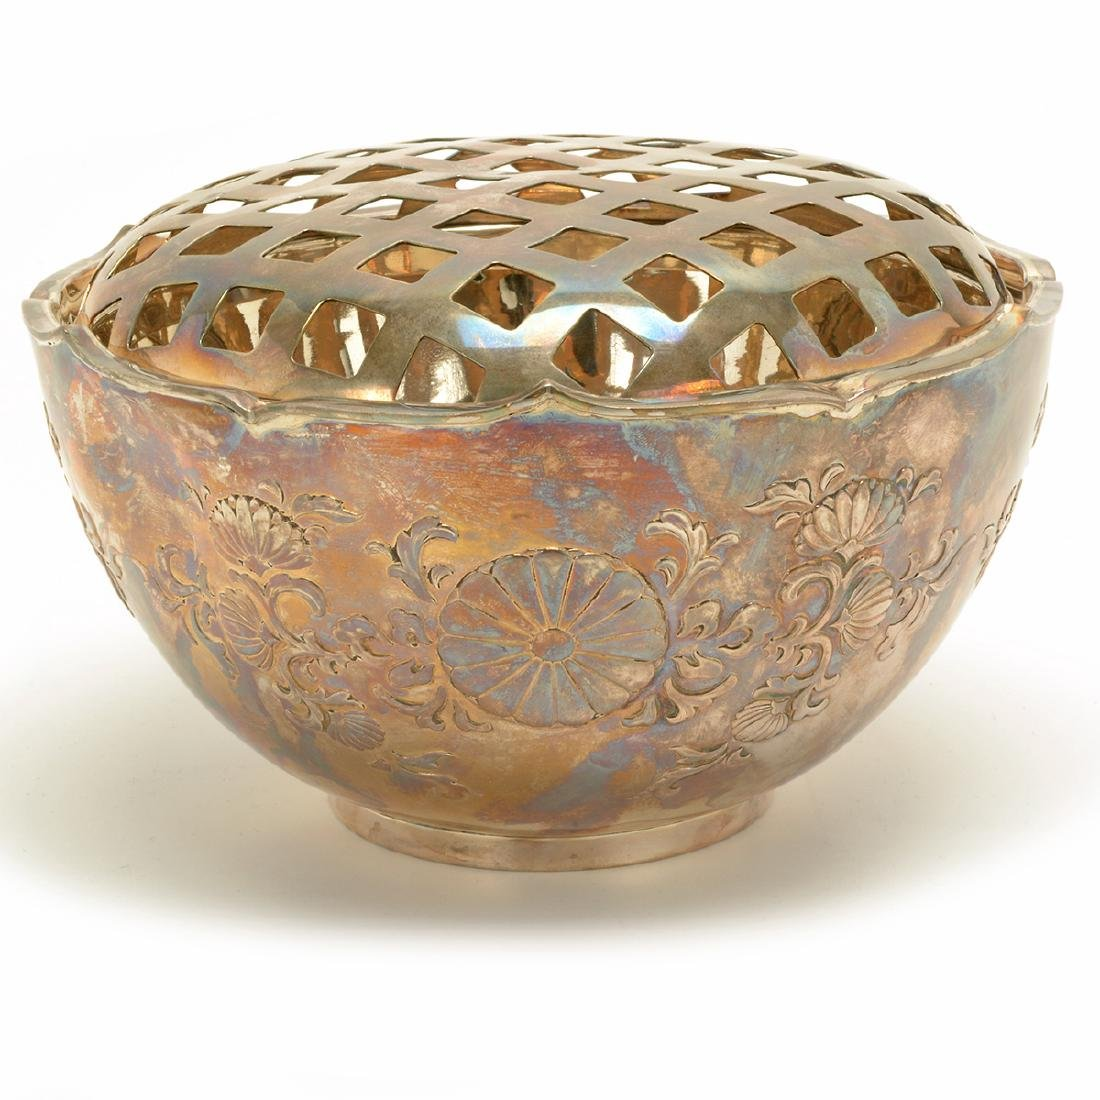 Foliated Silver Bowl and Lid, Early 20th Century